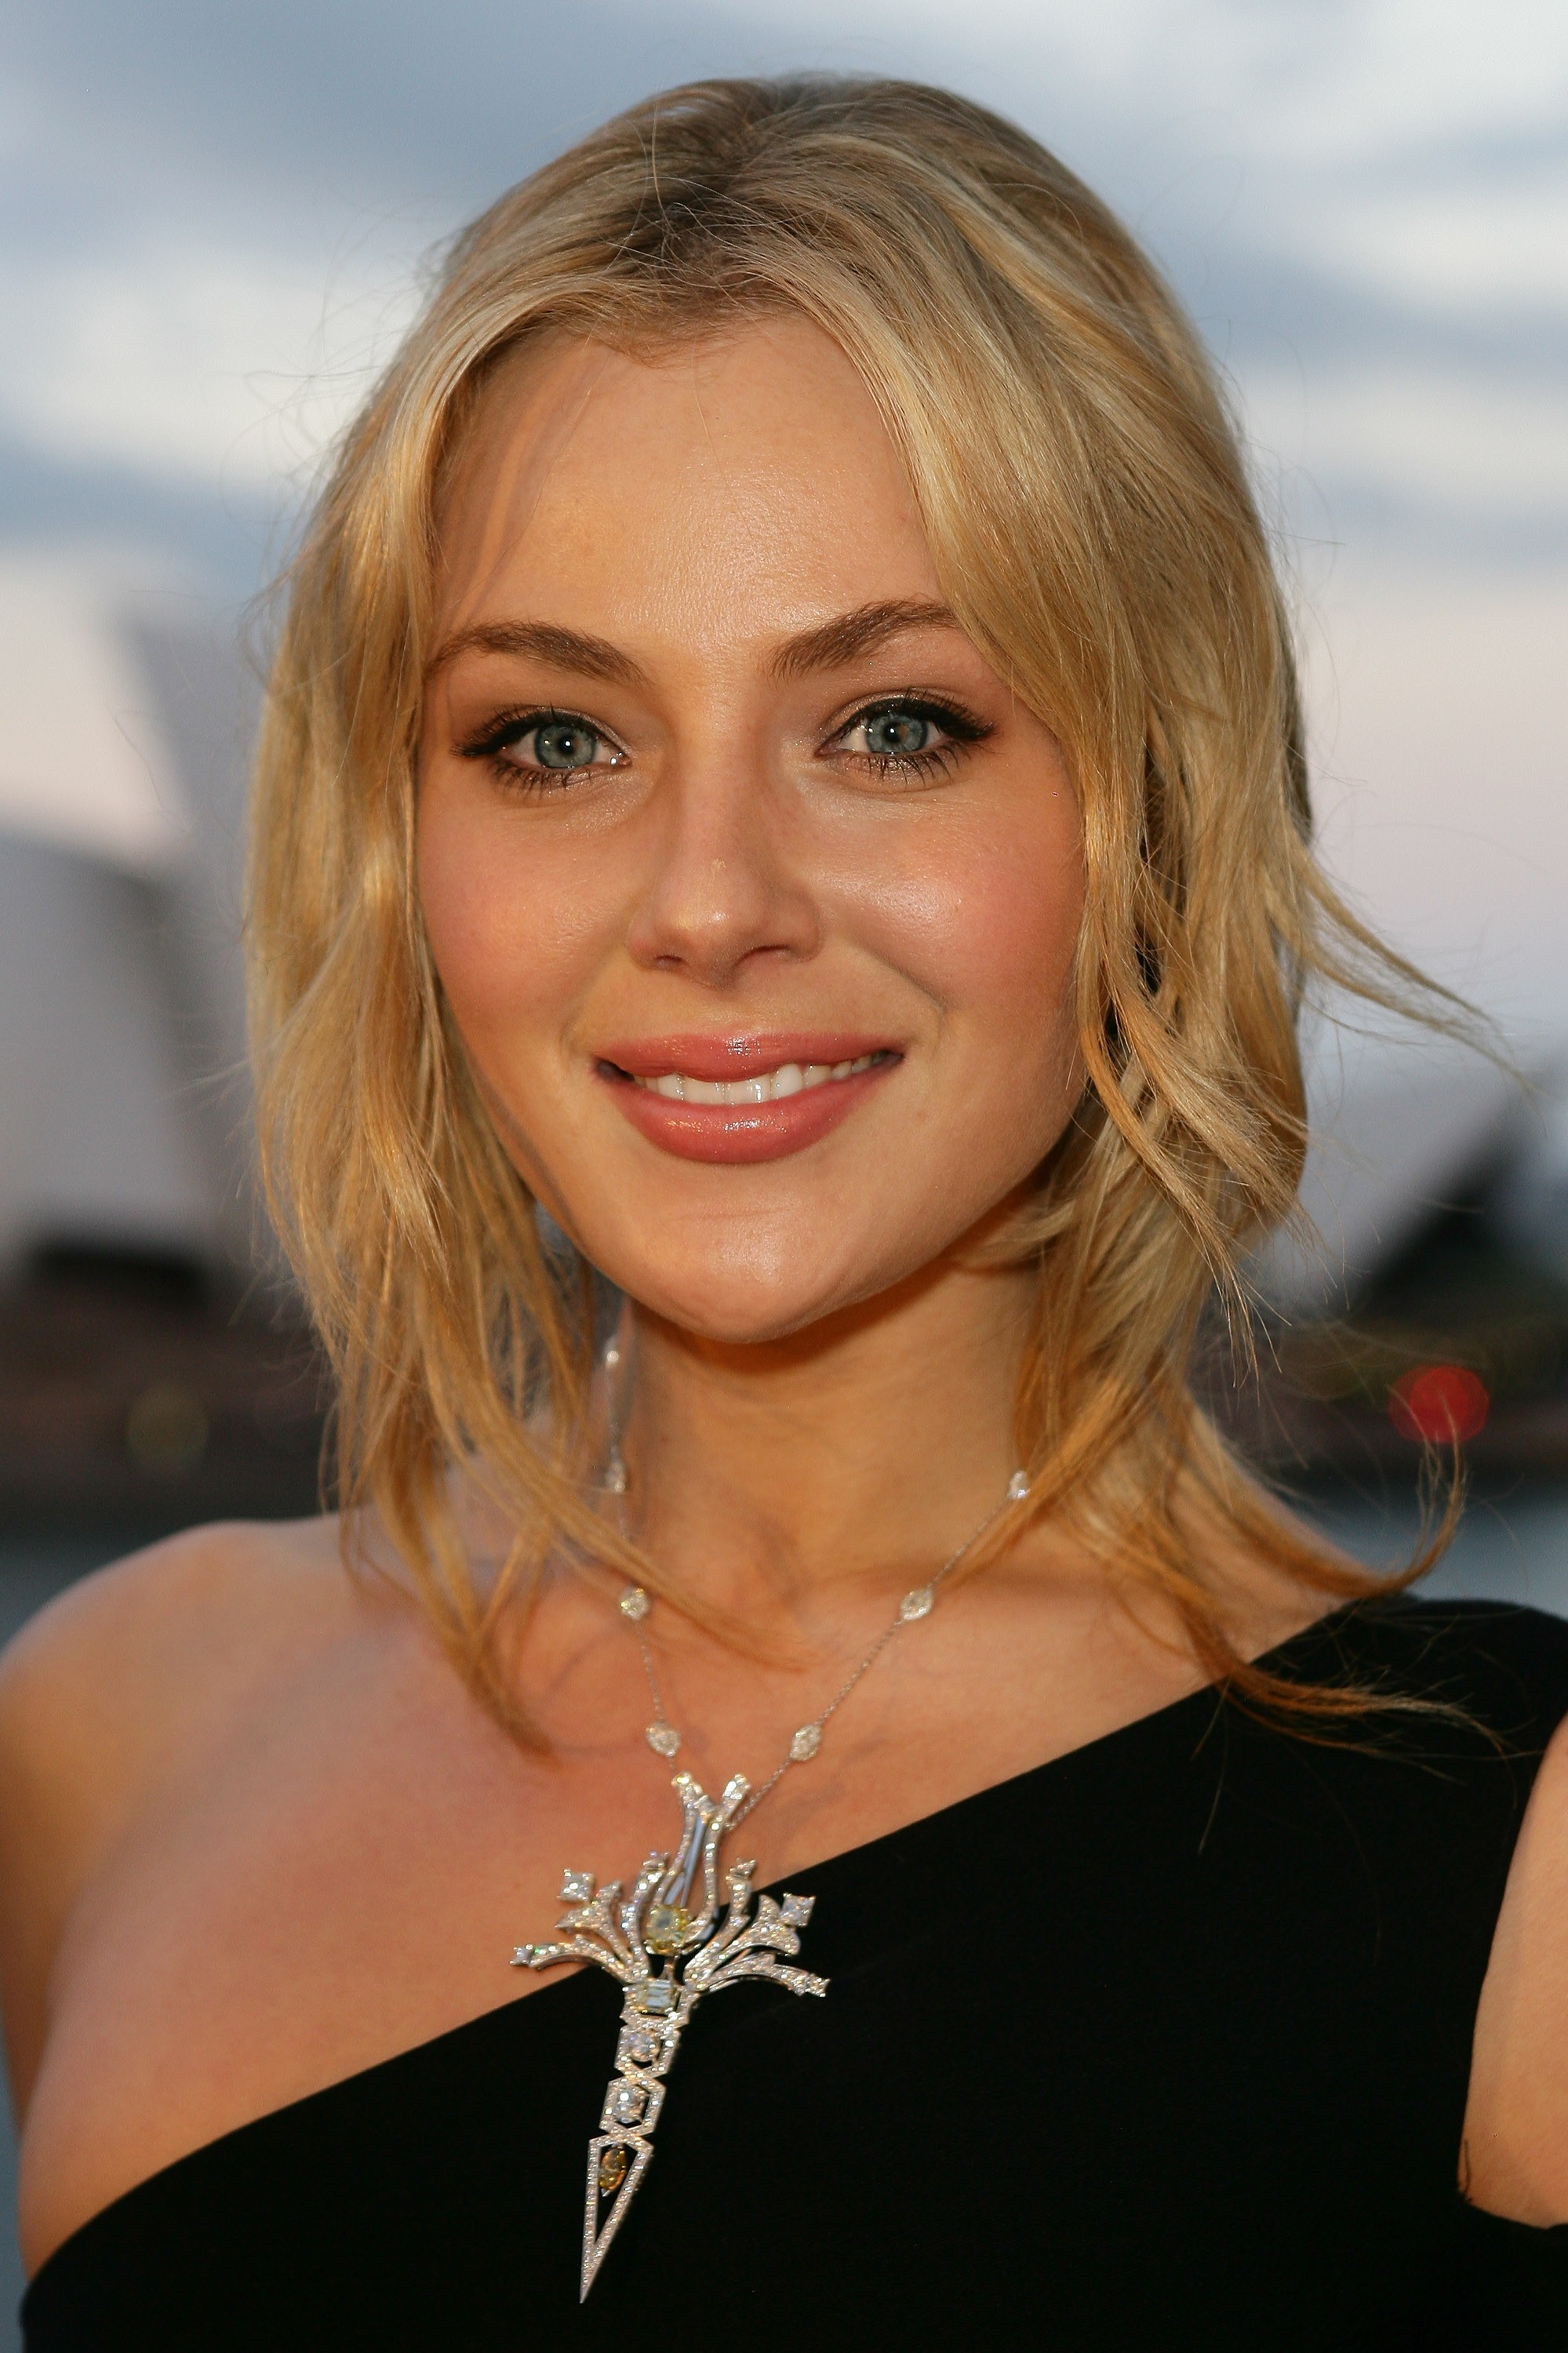 Crazy Iphone 5 Wallpapers Jessica Marais Wallpaper Ios Mode